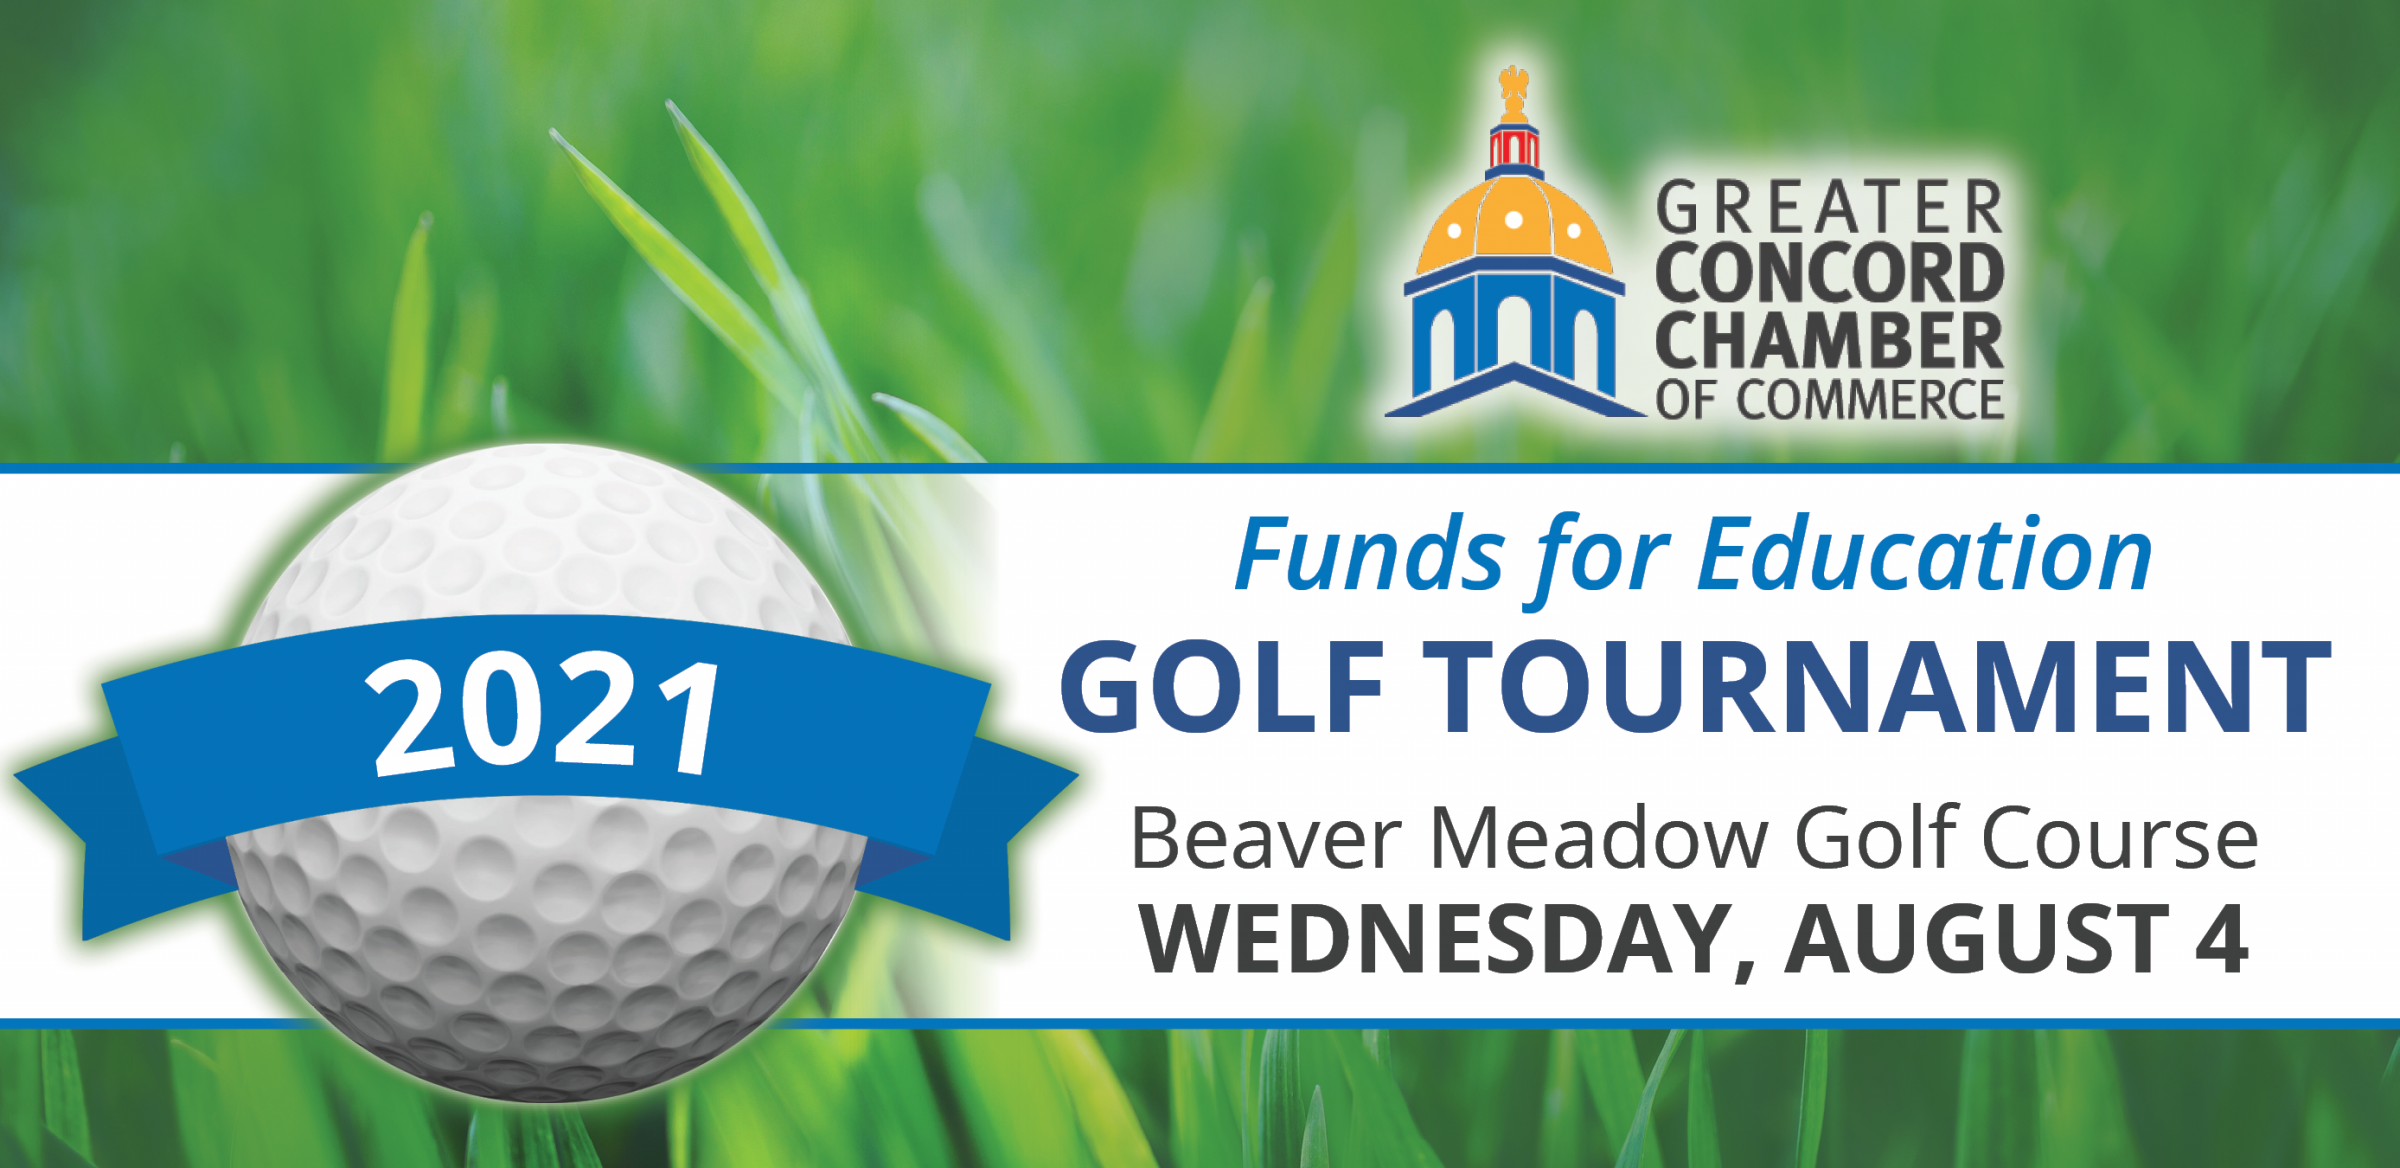 Funds for Education Golf Tournament